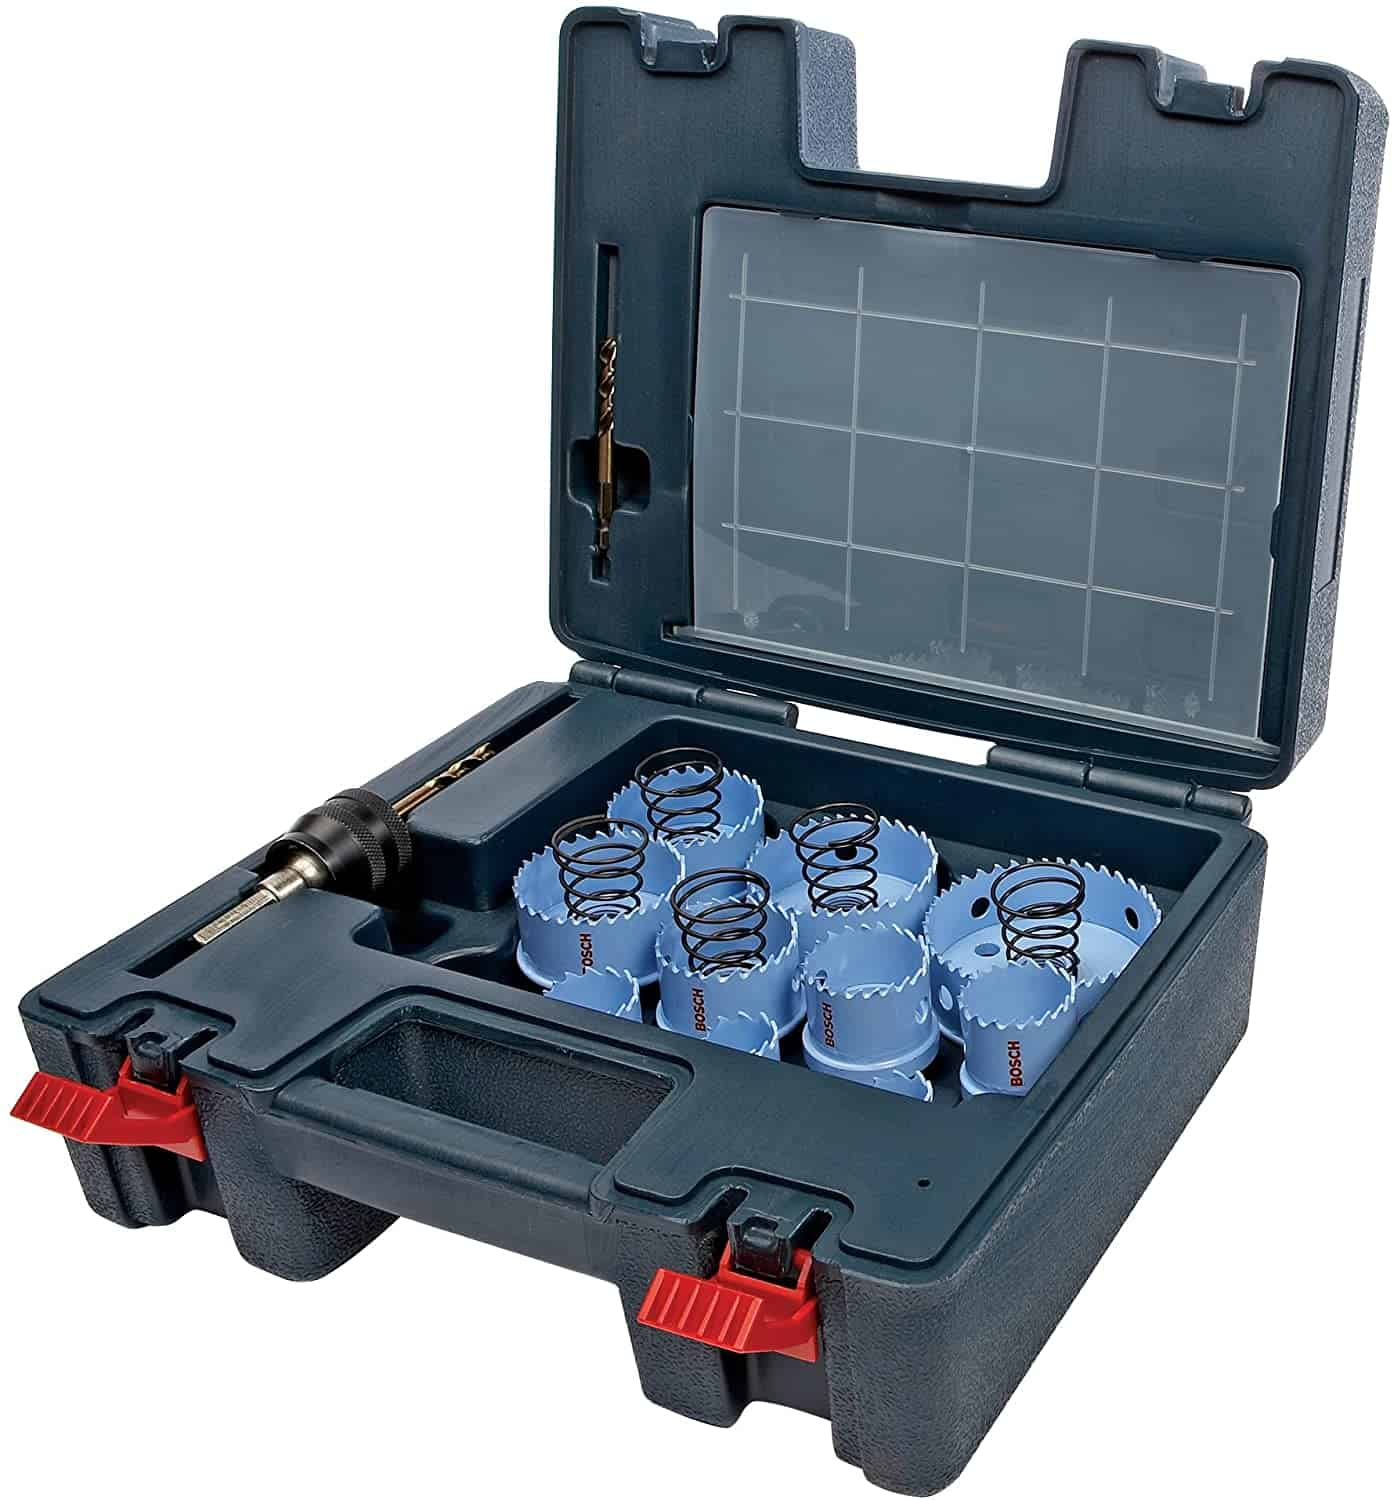 Premium hole saw set: Bosch HSM23 for Cutting Stainless Steel